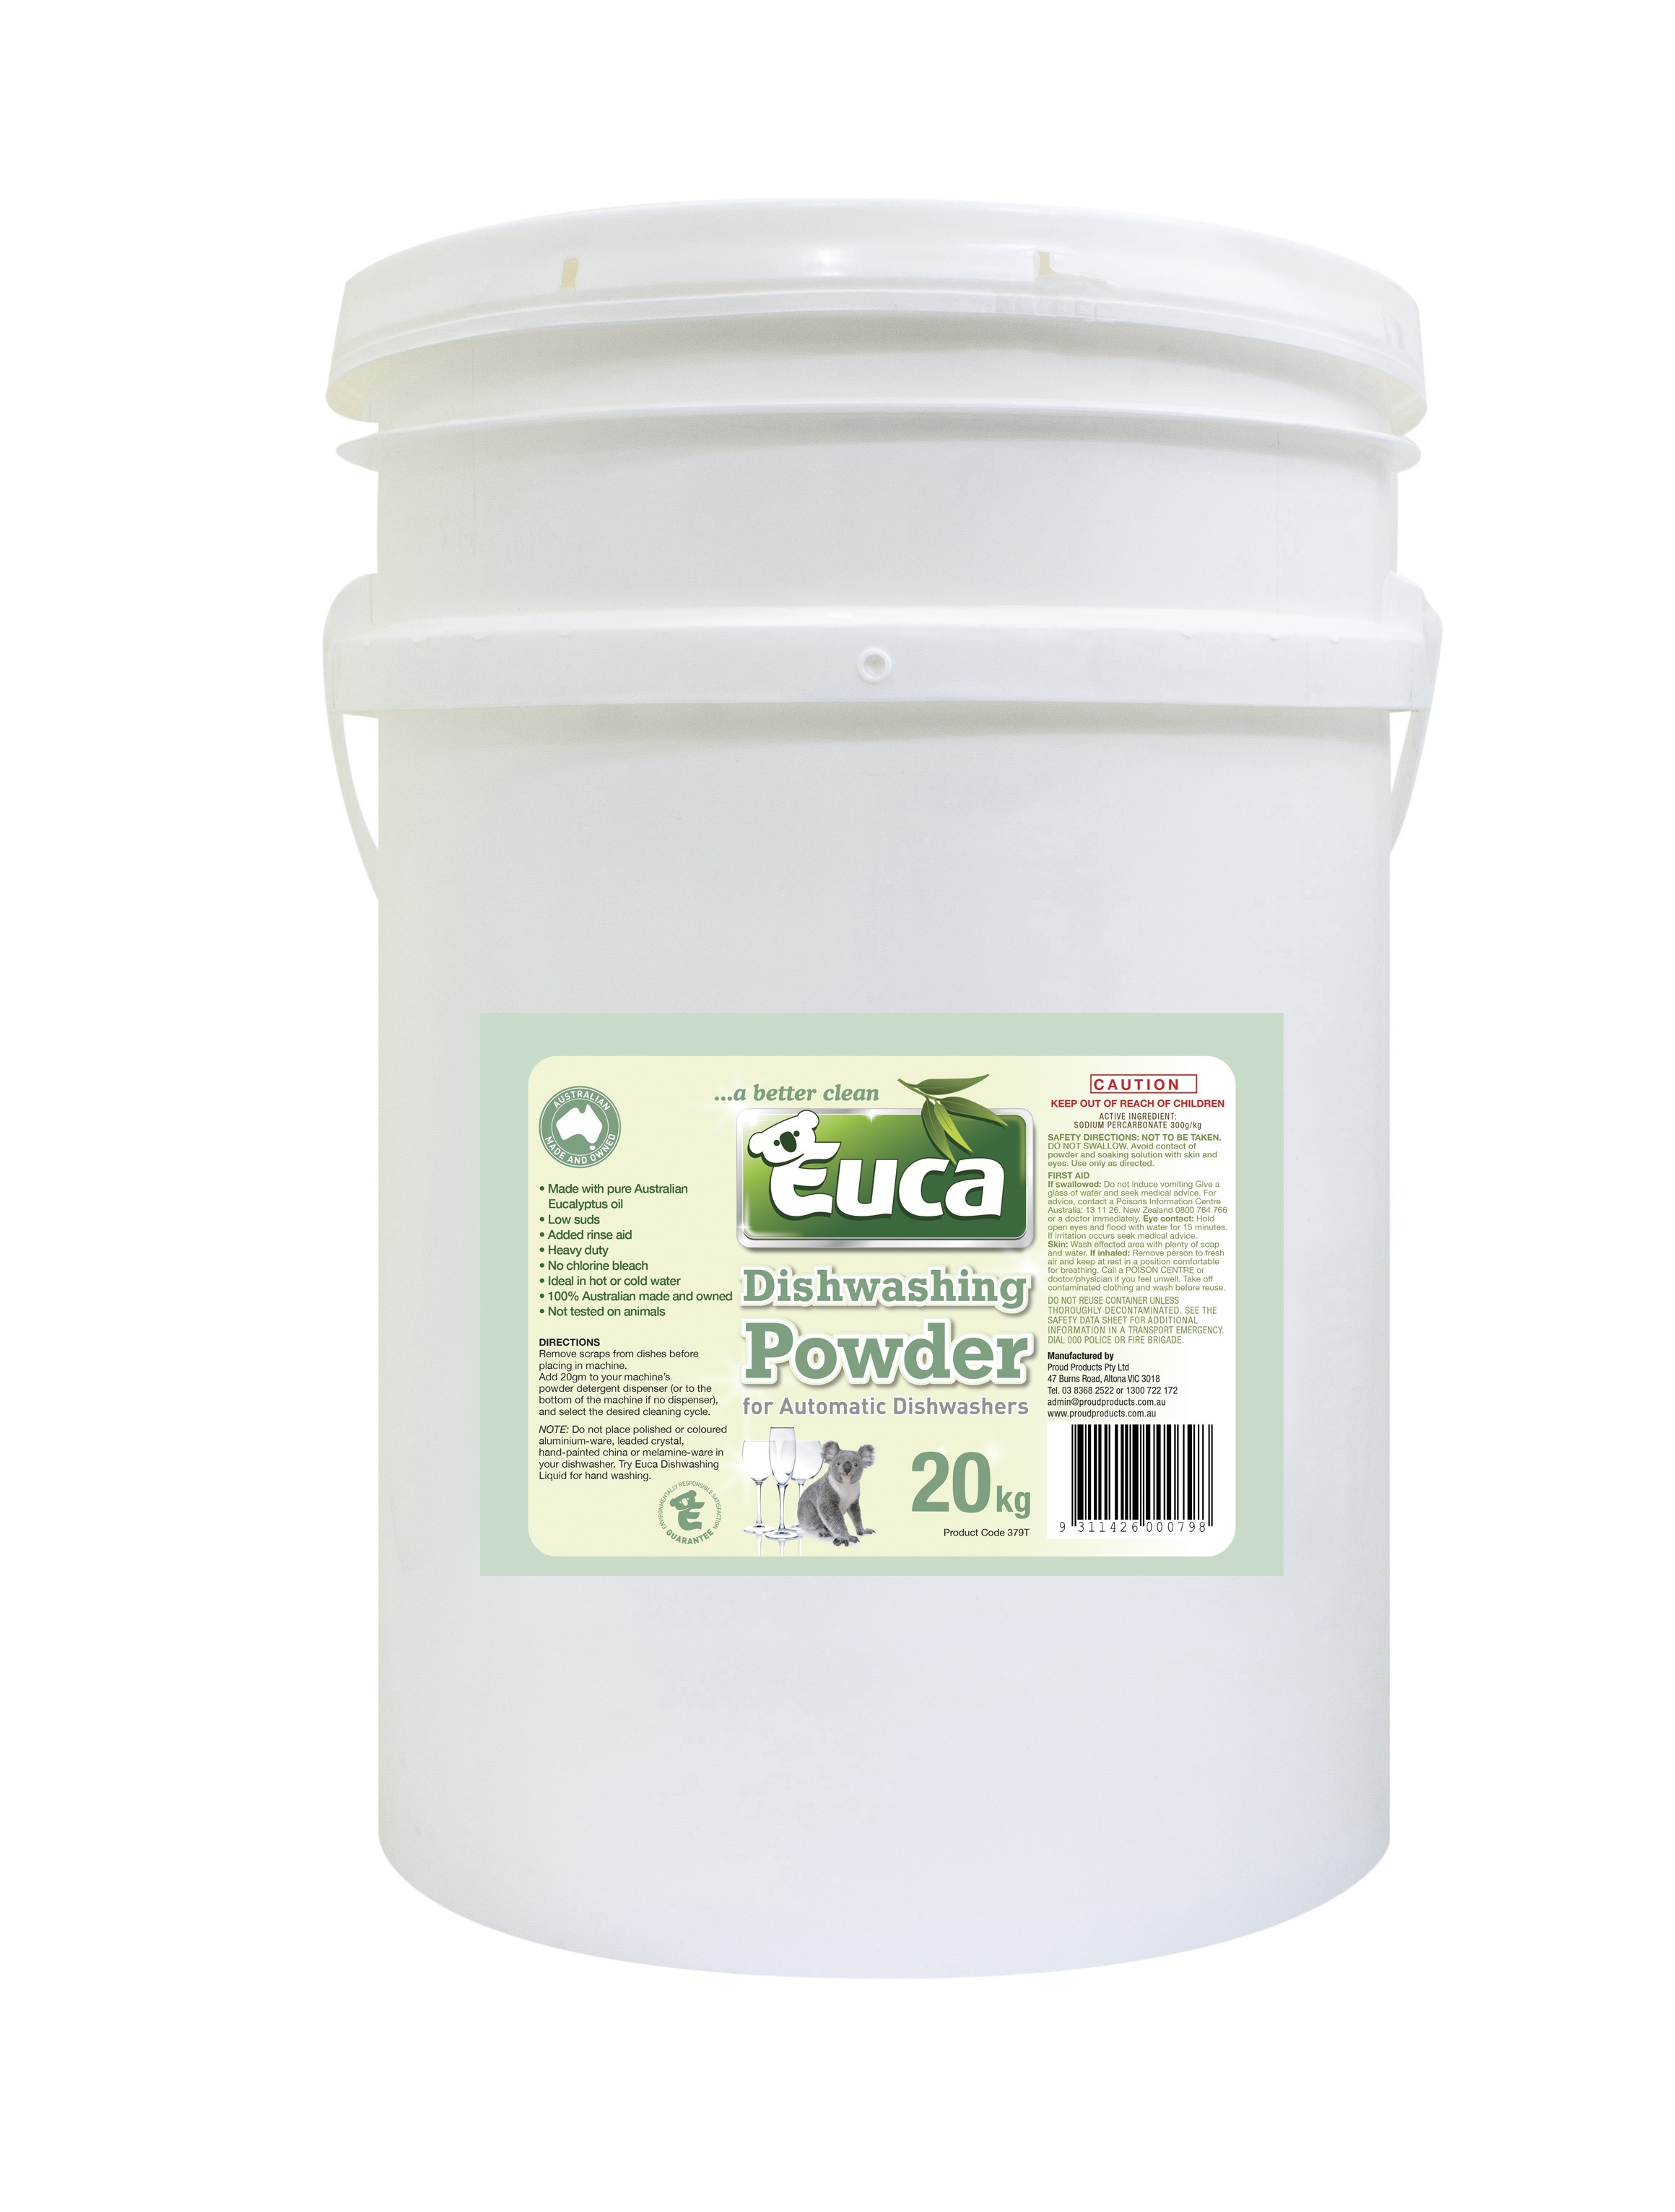 Euca Eucalyptus Dish Washing Powder  - NEW 20kg = 1000 Washes - Eco Friendly with No Fillers or other nasties 379T